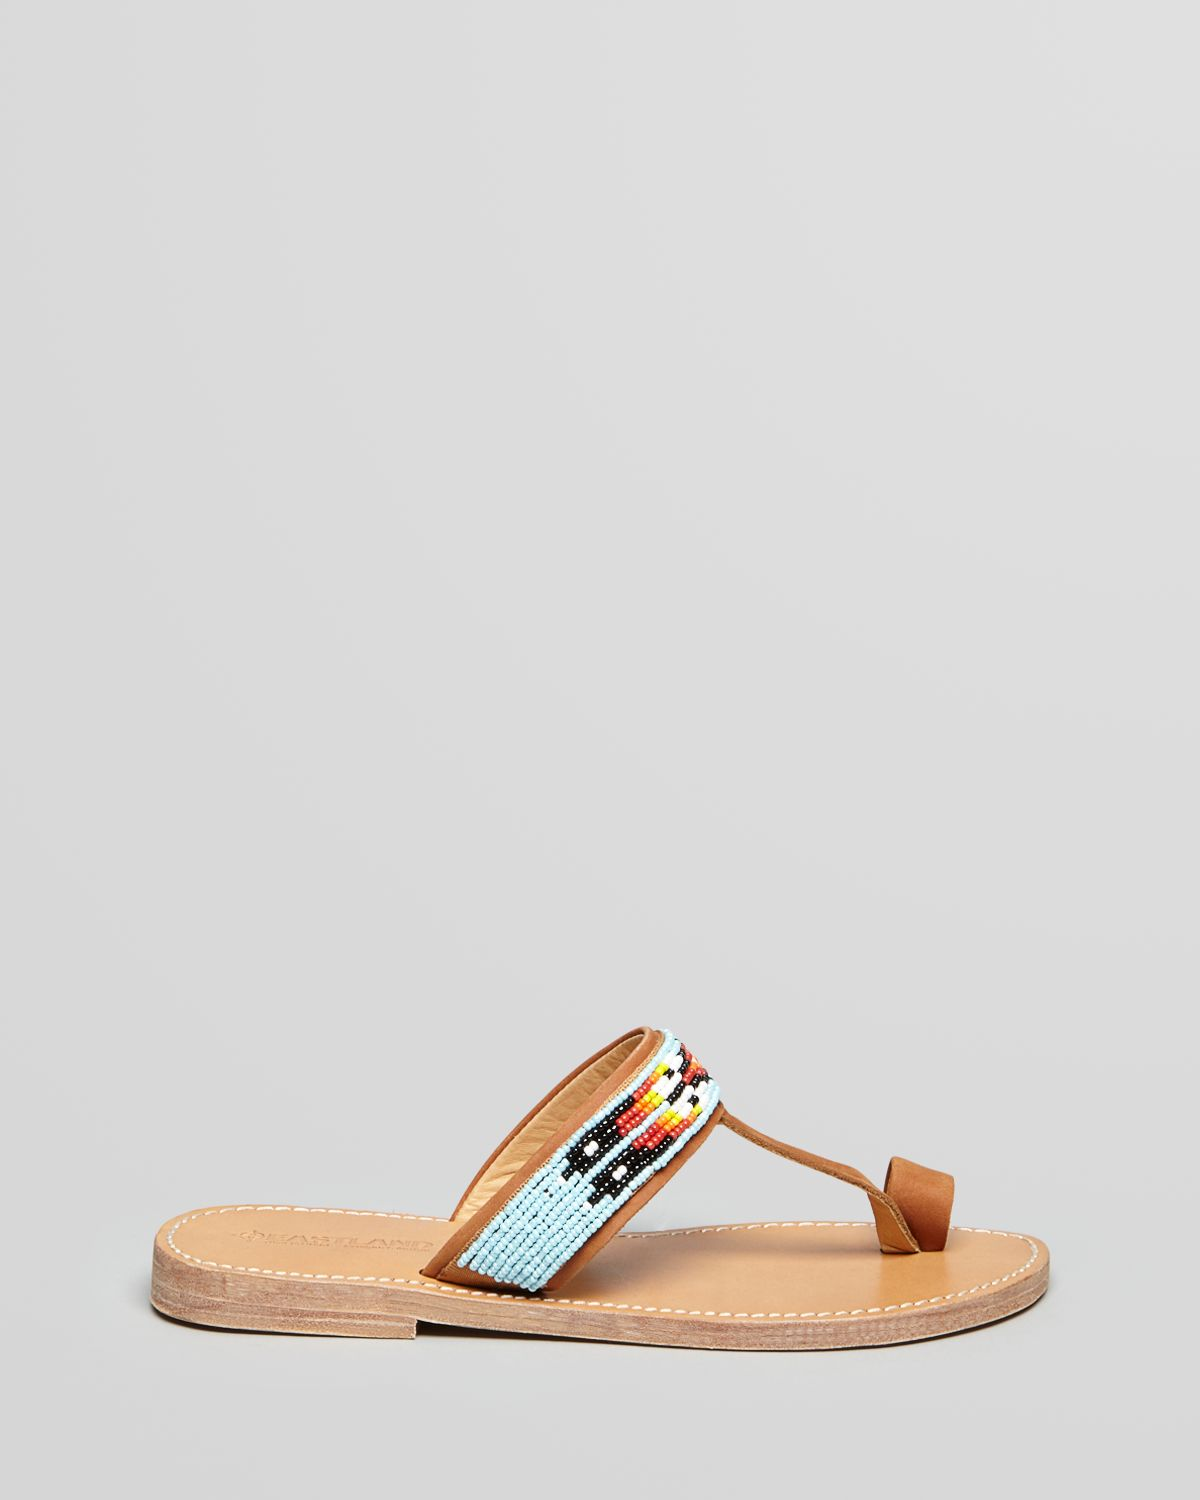 57110ba10936 Eastland 1955 Edition Flat Sandals Hickory Beaded Toe Ring - Lyst